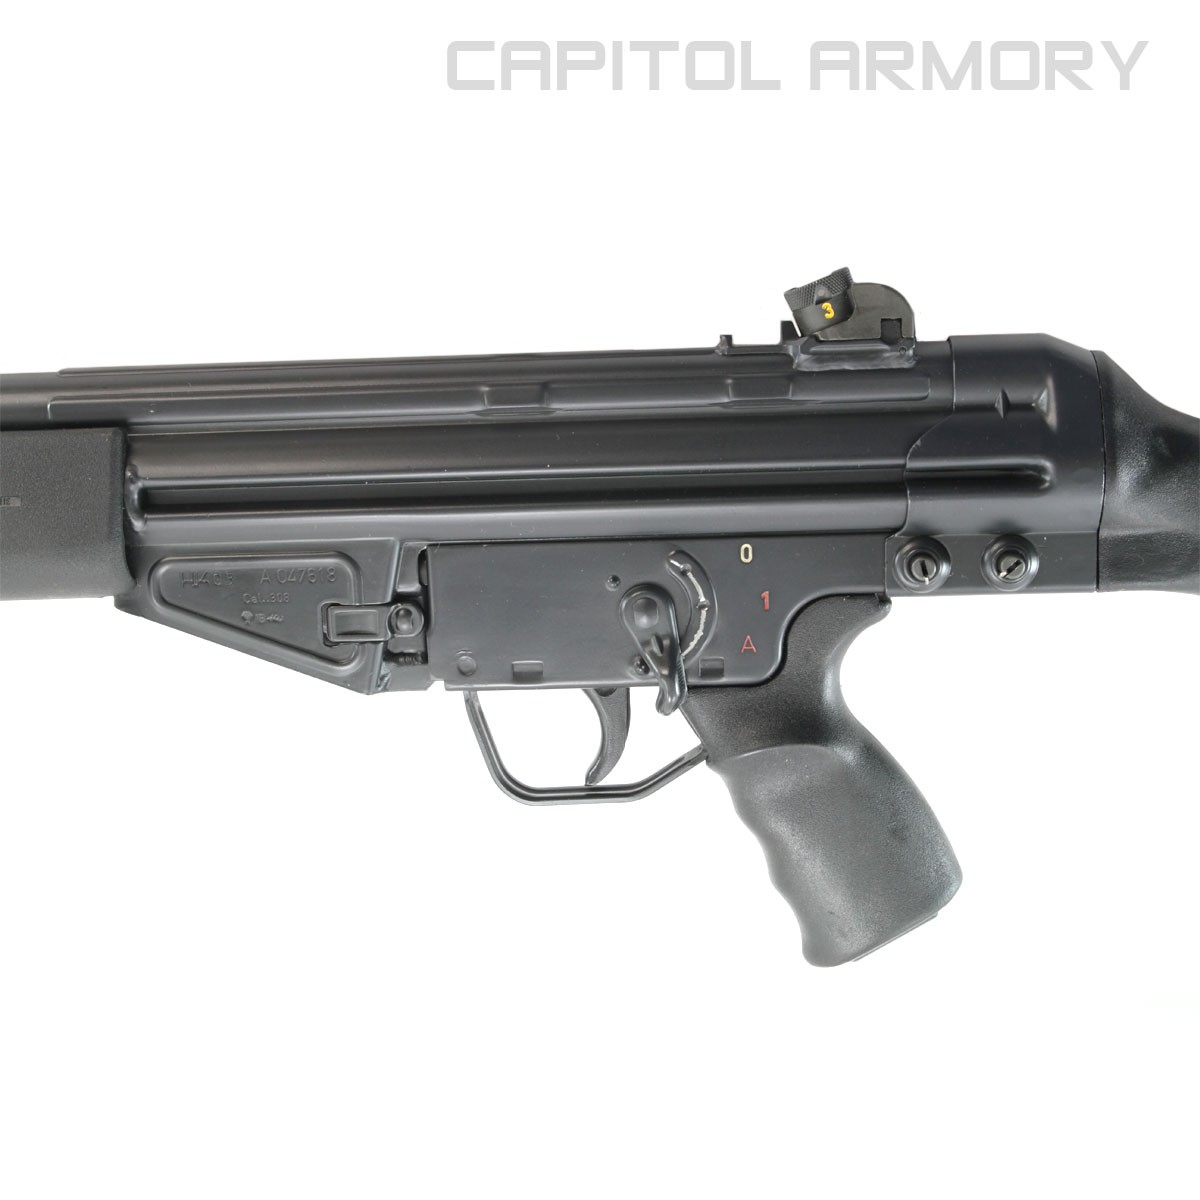 HK G3A2 - Capitol Armory